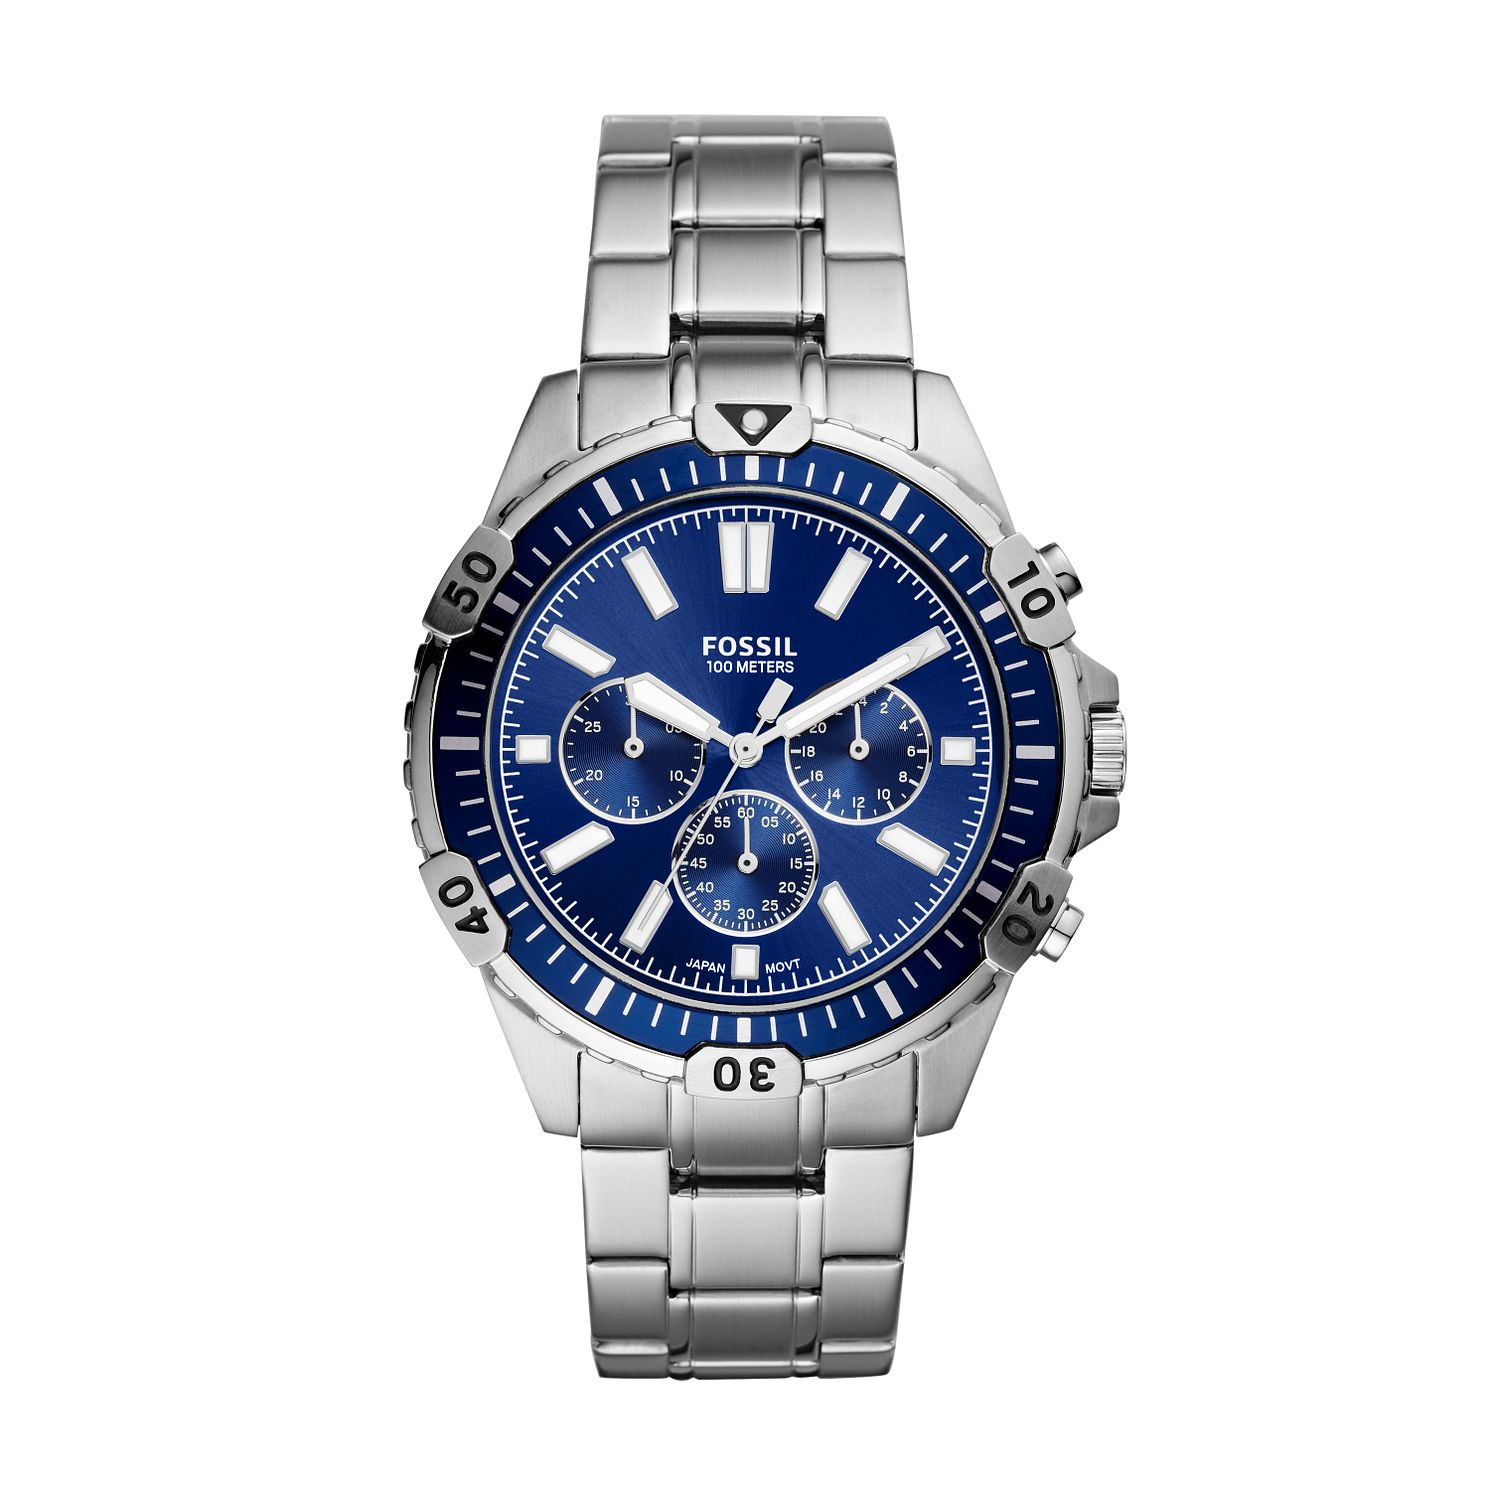 Fossil Men's Blue Dial Stainless Steel Bracelet Watch - Product number 4011325